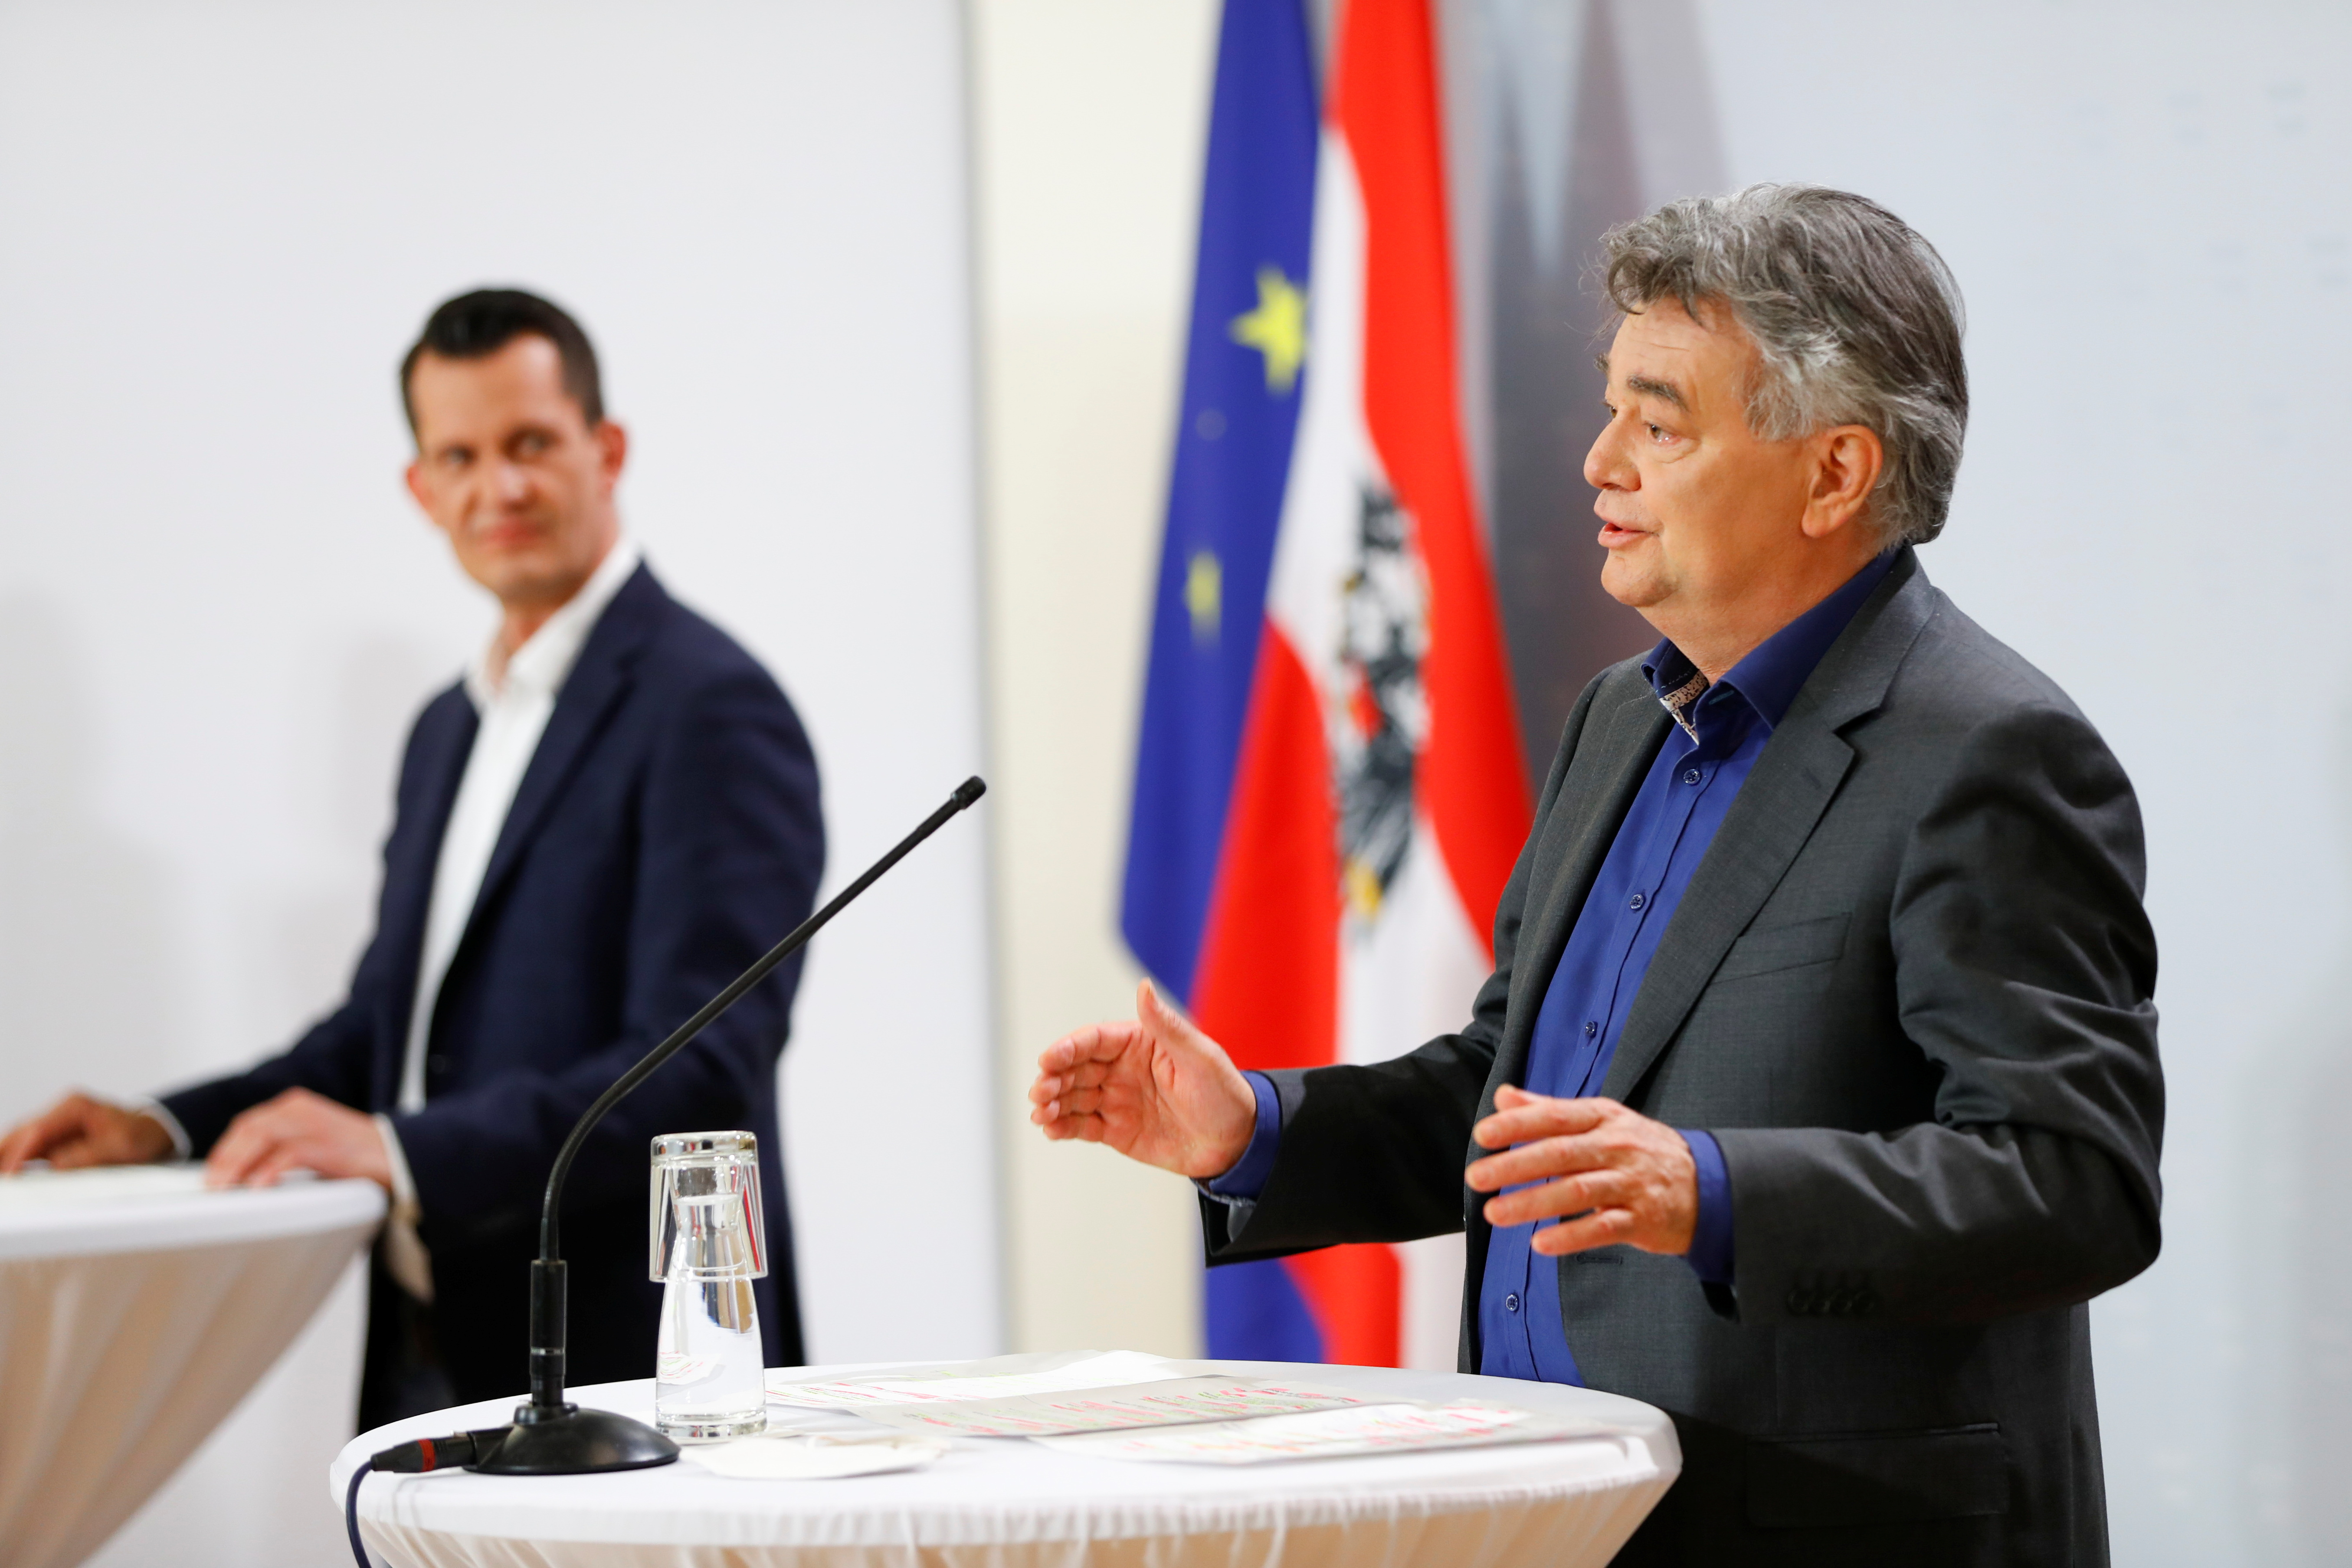 Austrian Vice Chancellor Werner Kogler and designated Health Minister Wolfgang Mueckstein attend a news conference in Vienna, Austria April 13, 2021. REUTERS/Leonhard Foeger